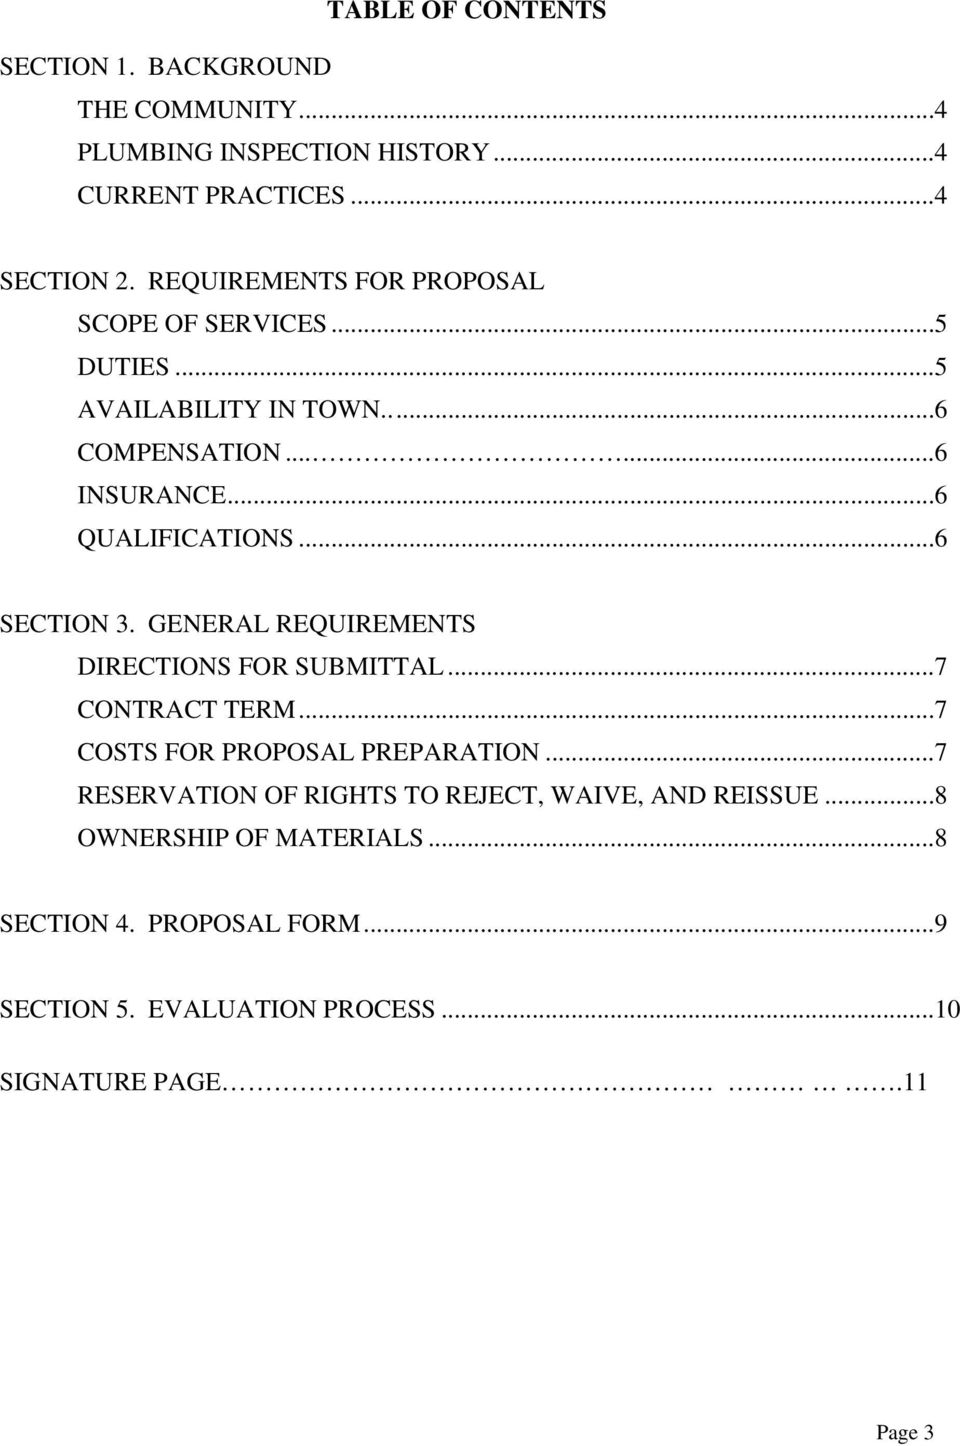 ..6 SECTION 3. GENERAL REQUIREMENTS DIRECTIONS FOR SUBMITTAL...7 CONTRACT TERM...7 COSTS FOR PROPOSAL PREPARATION.